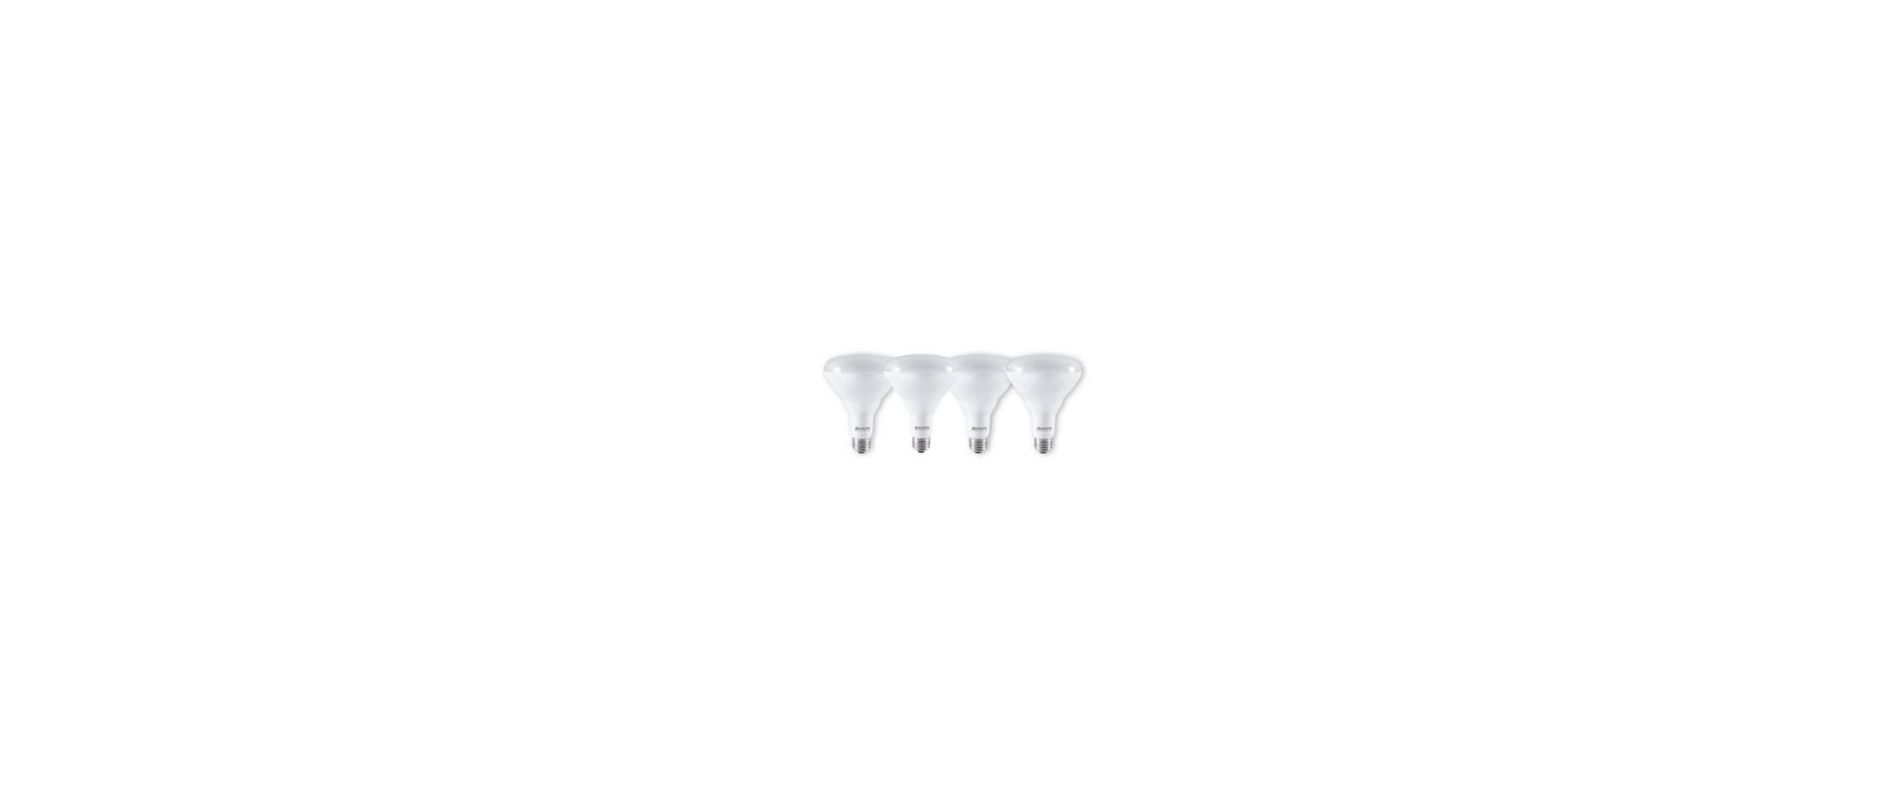 Bulbrite 773350 Pack of (4) - Reflector 9 Watt Dimmable BR30 Shaped